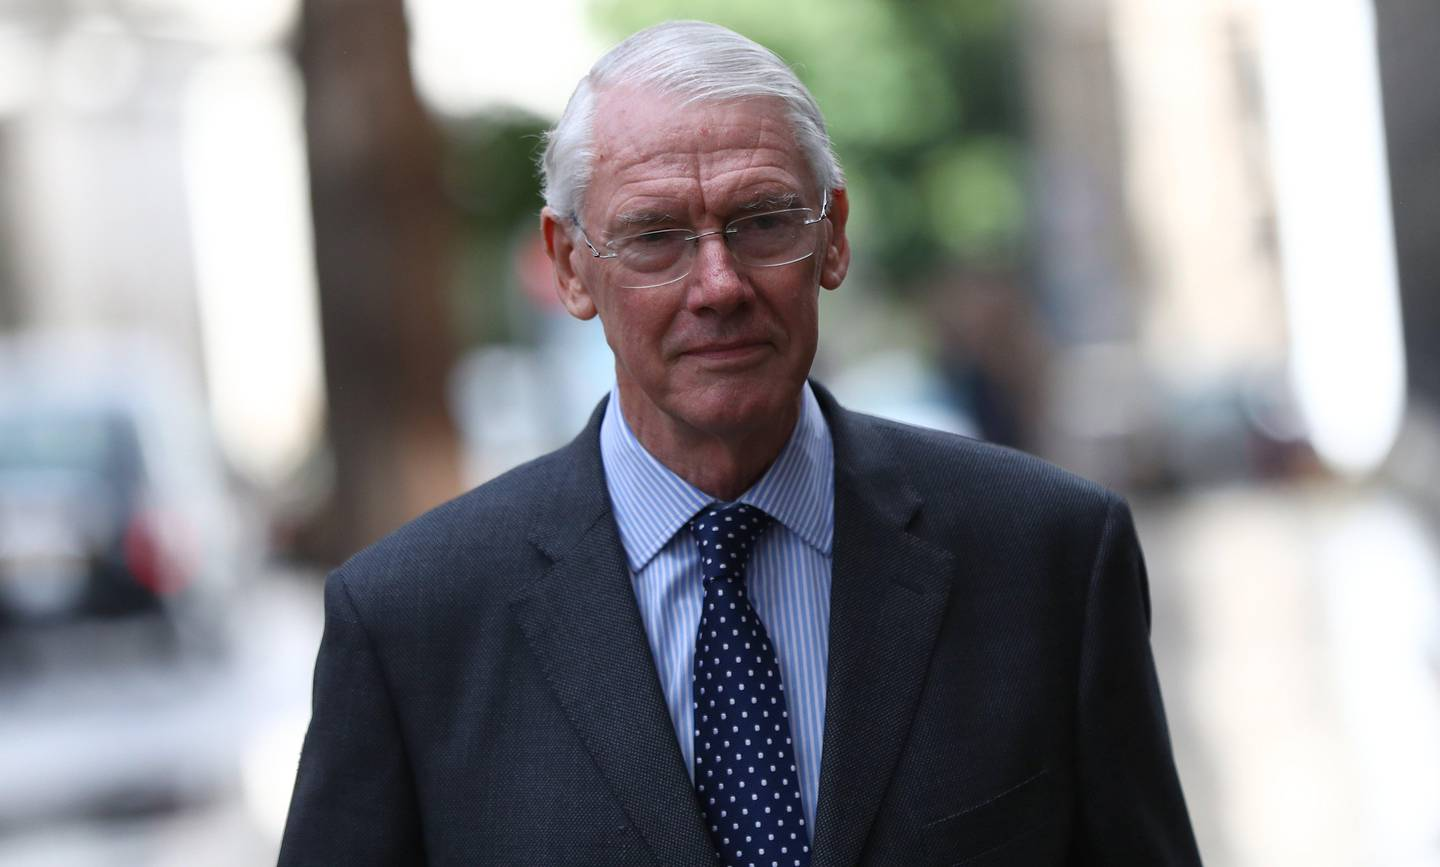 epa06202304 Sir Martin Moore-Bick, the judge for the Grenfell Tower Inquiry, arrives at the High Court in London, Britain, 13 September 2017.  A public inquiry into the Grenfell Tower fire, which killed at least 80 people and destroyed Grenfell Tower on 14 June 2017, will start formally on 14 September 2017.  EPA/NEIL HALL